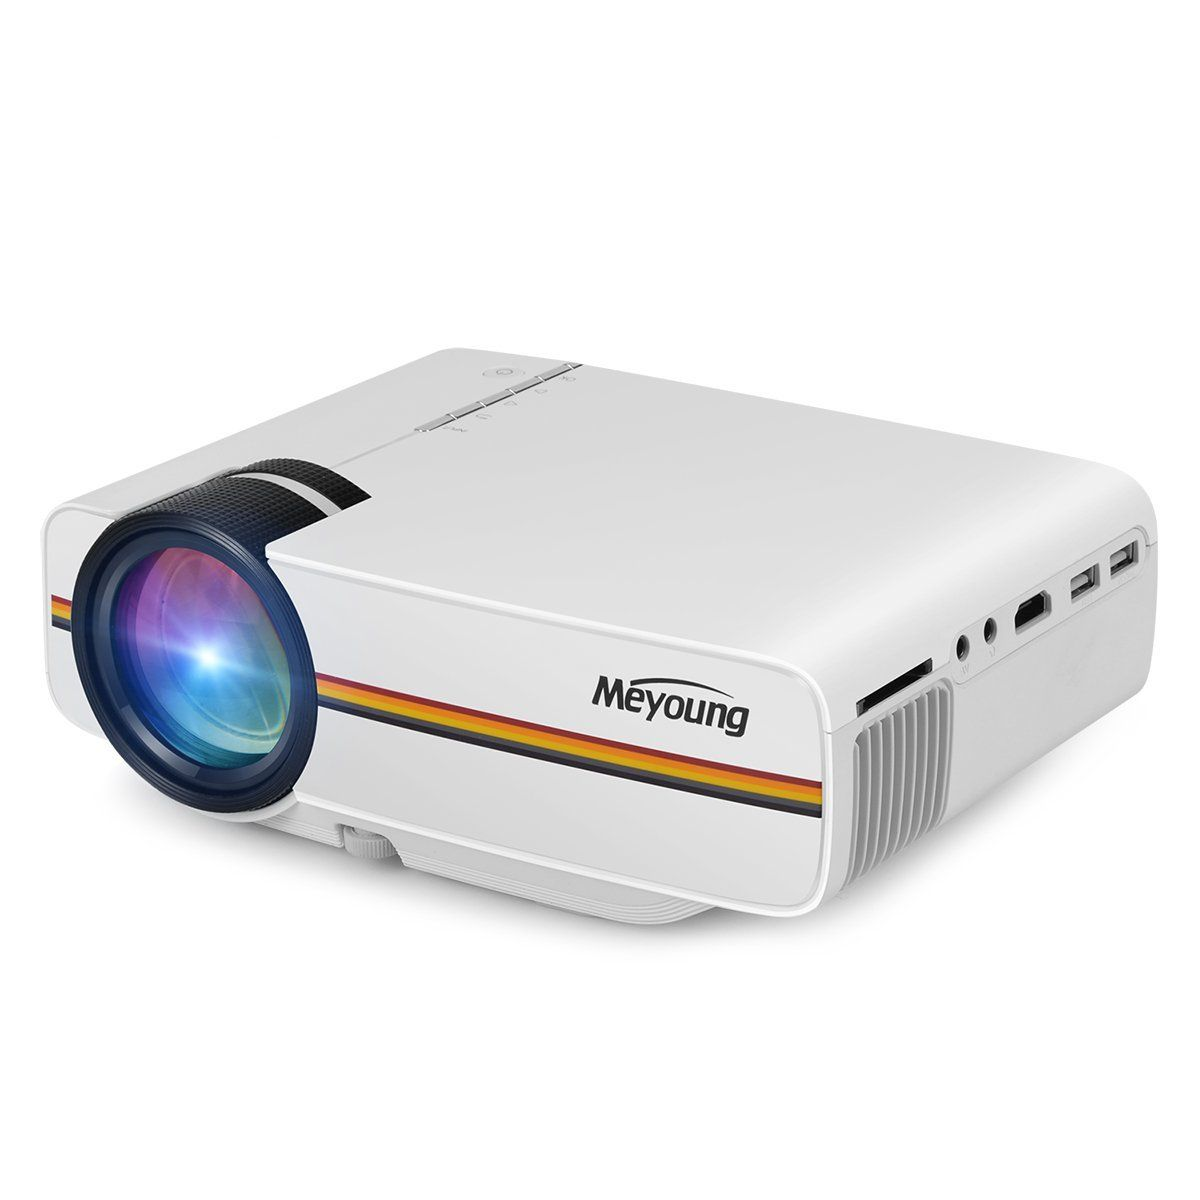 Meyoung portable projector 1080p 1200 lumens